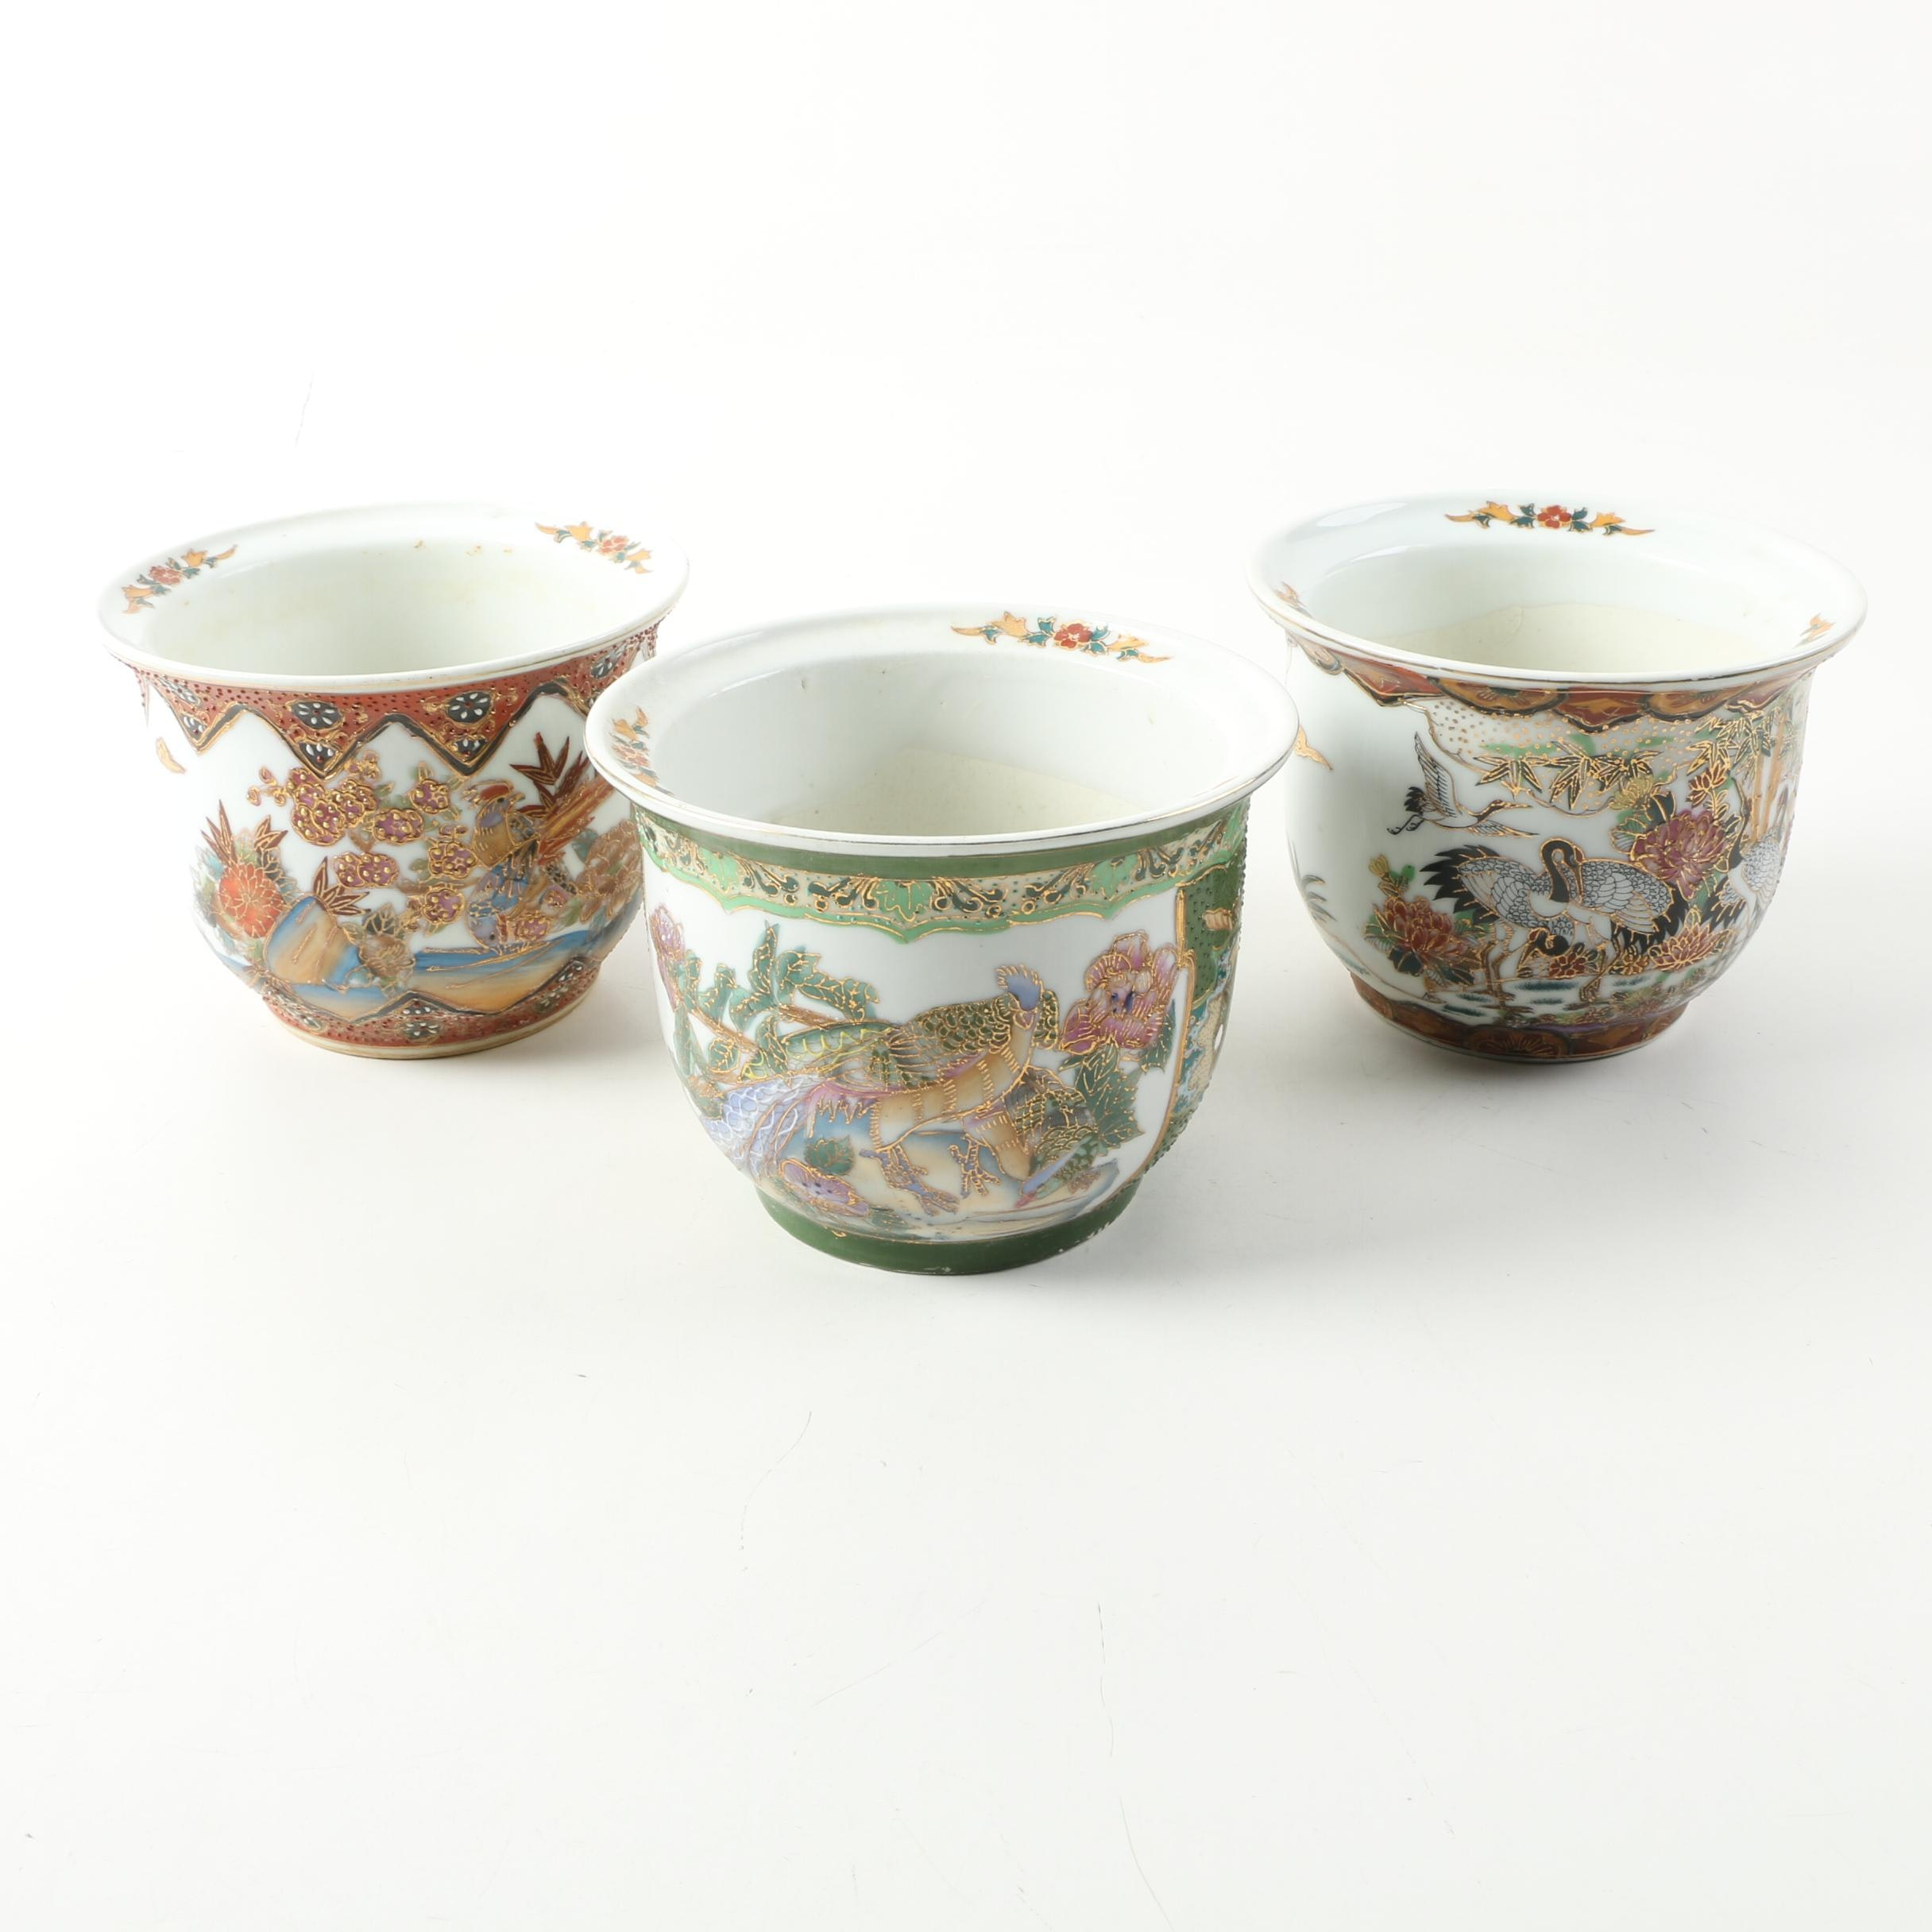 Decorative Chinese Ceramic Planters